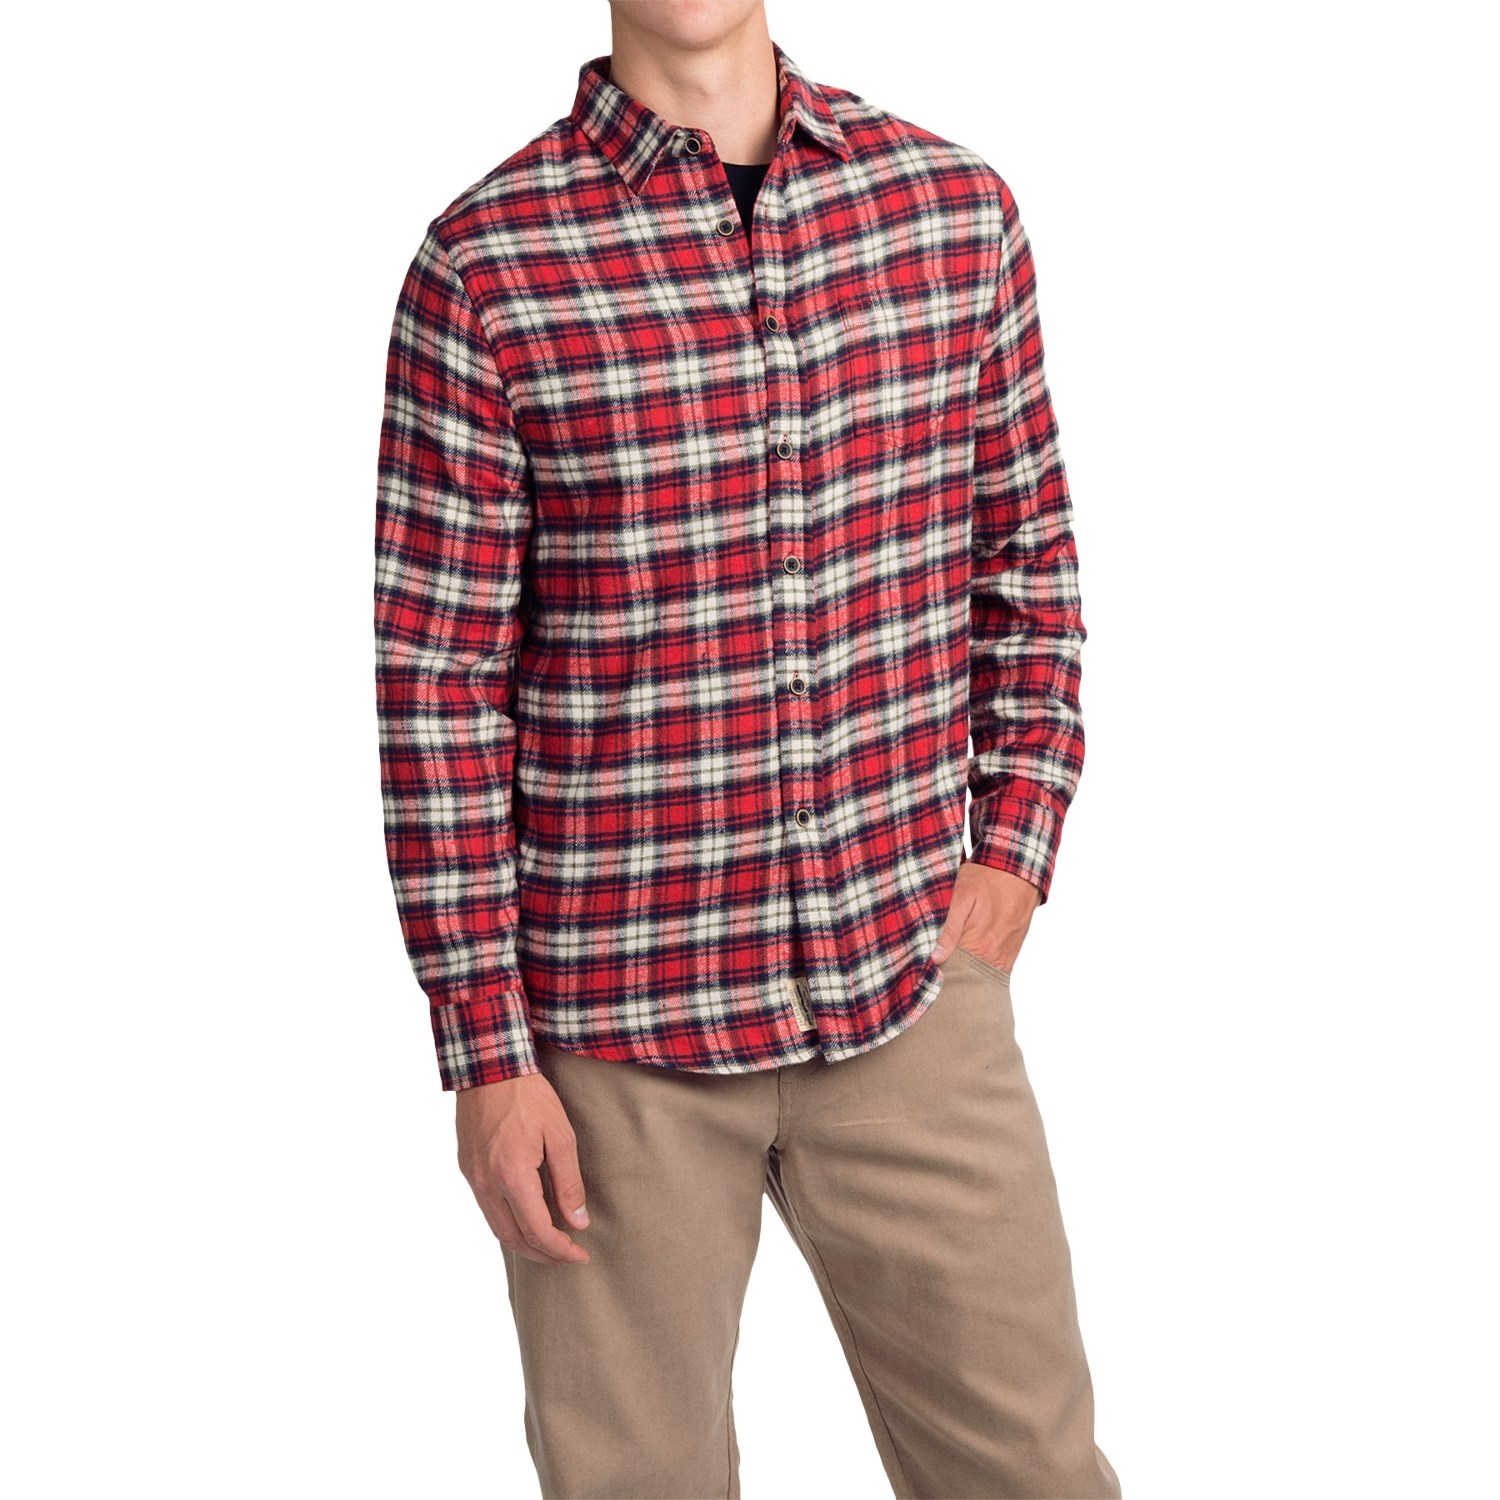 Jachs Mens Long Sleeve Button Front Flannel Shirt Red/Navy ...